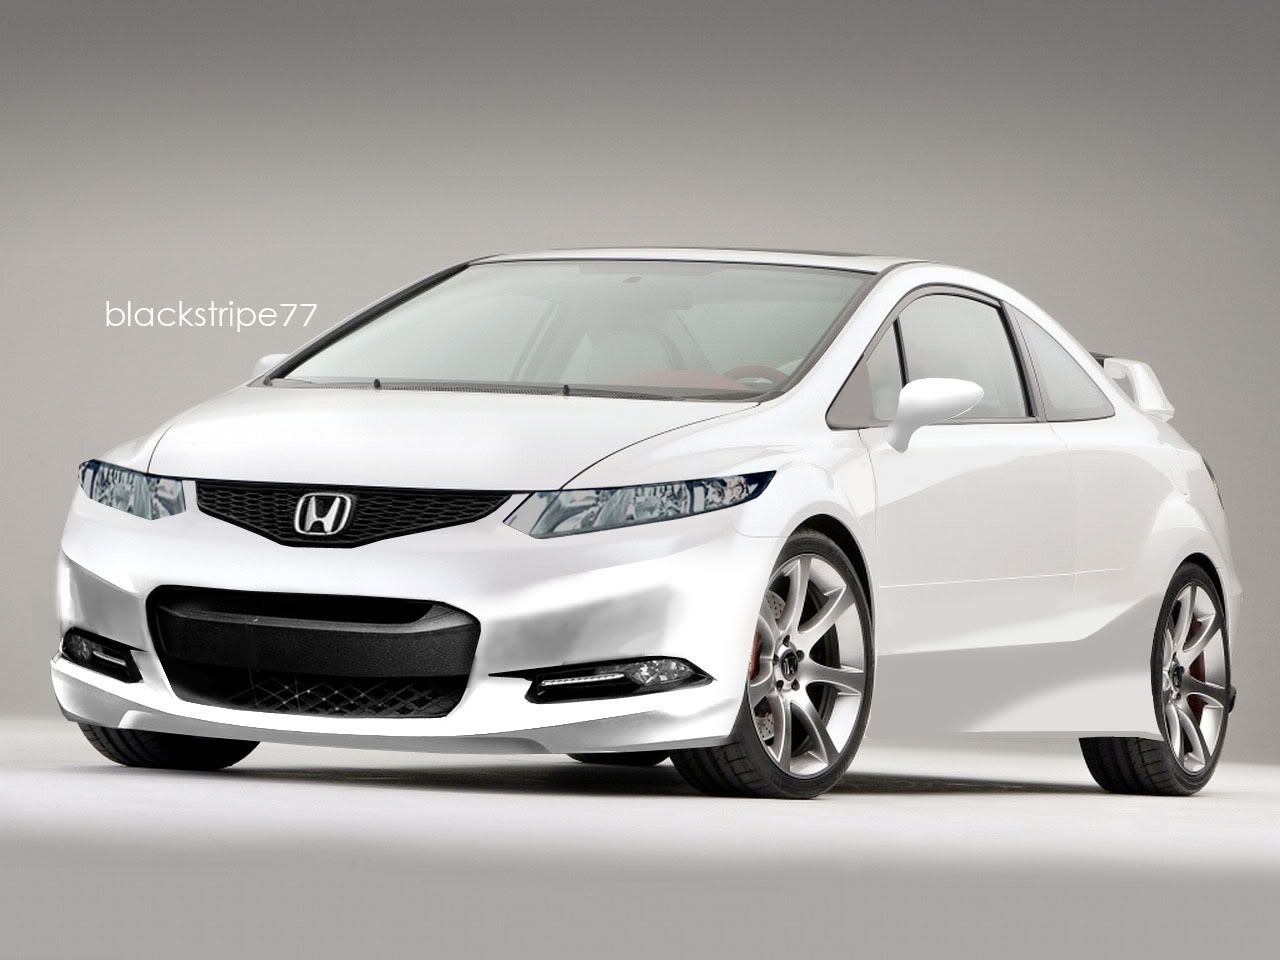 2012 Honda Civic Coupe (MSRP): $15,755 - $27,805 (MPG): 22 - 29 city ...